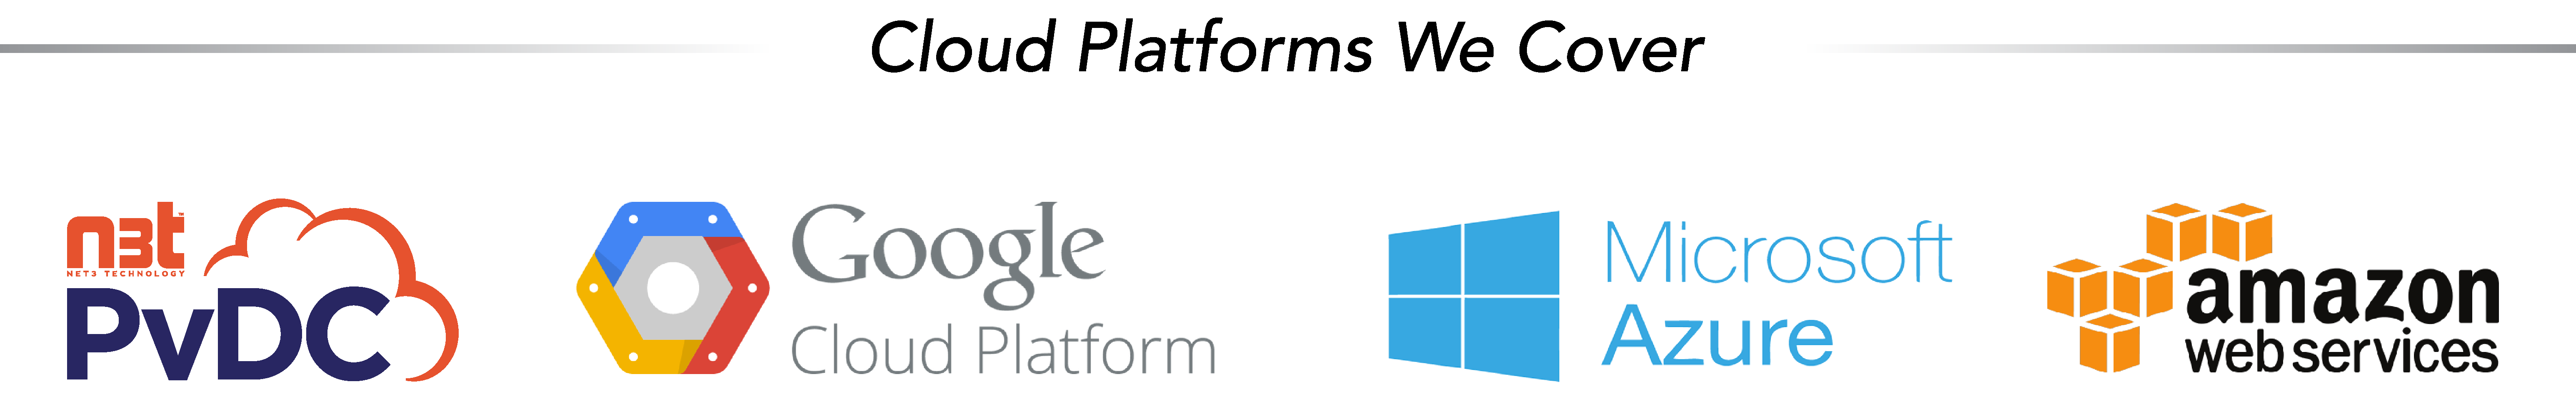 Cloud platforms-01-3